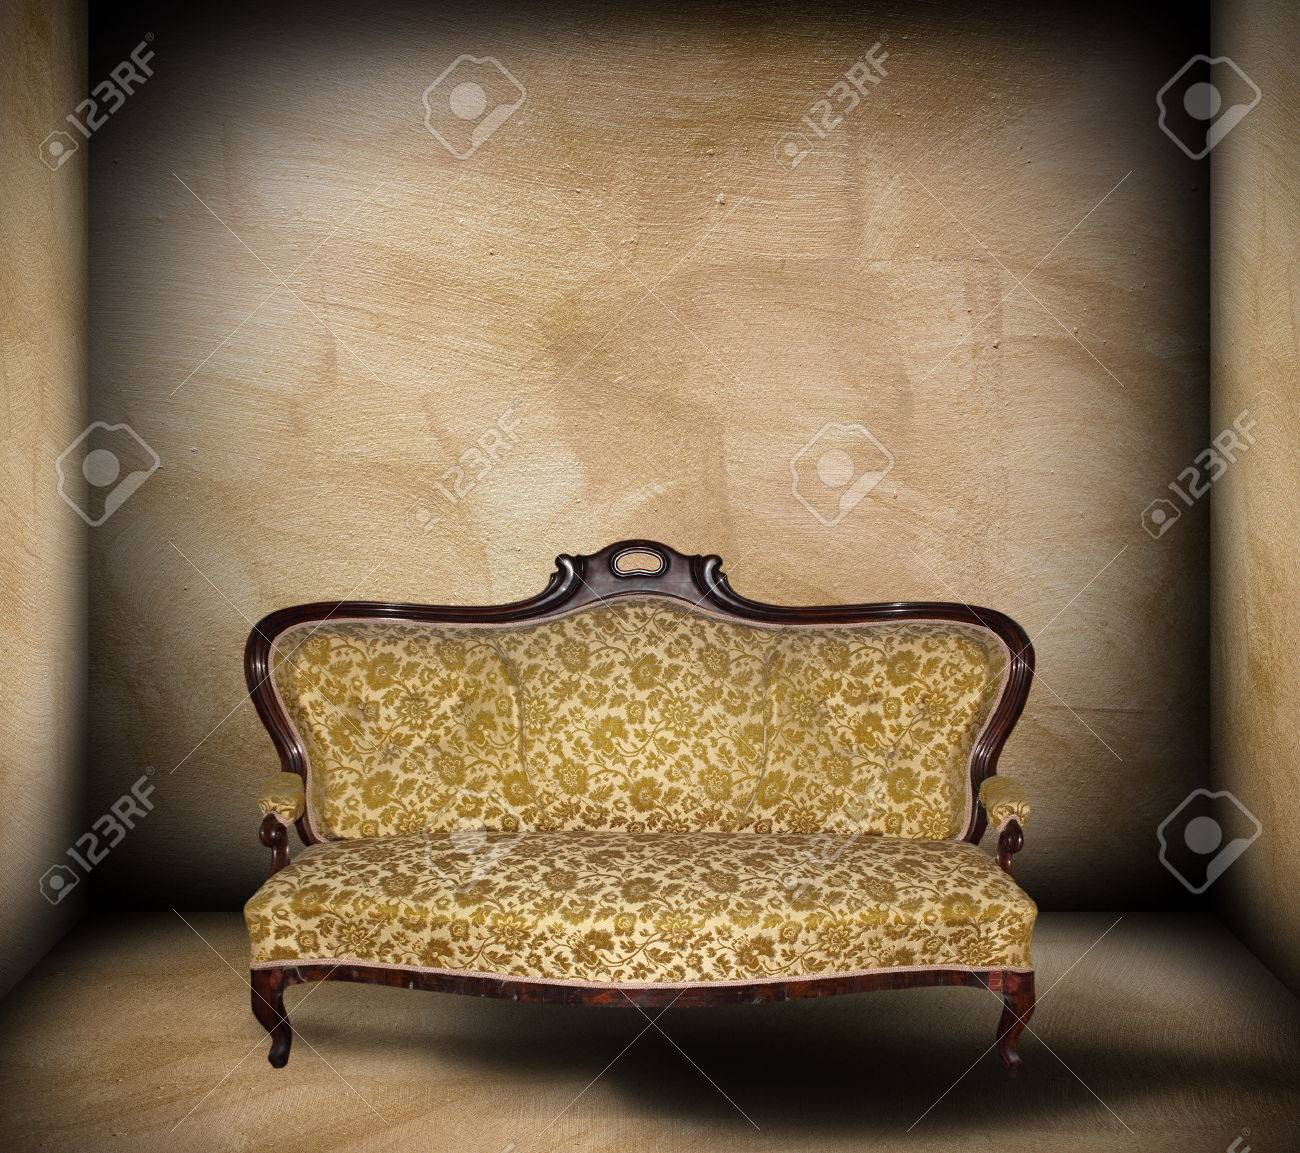 Beautiful Sofa In Minimalist Empty Room Backdrop Ready For Your Design Stock Photo